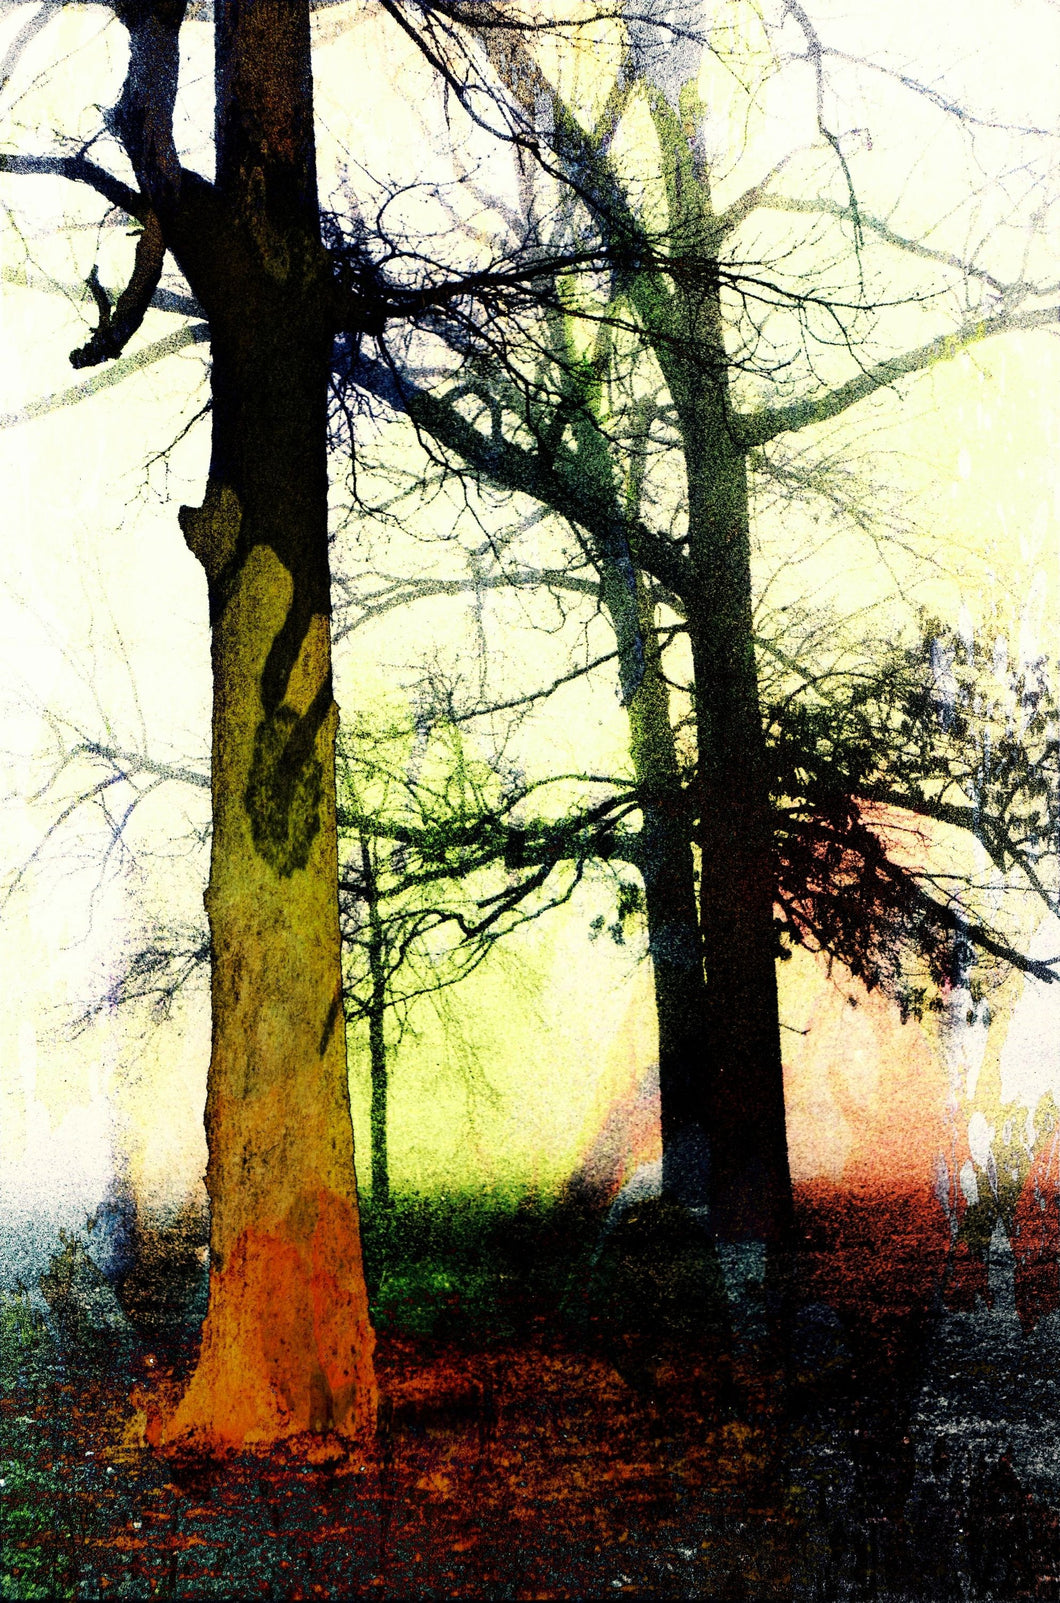 Trees in the fog # 2 abstract pop art print.